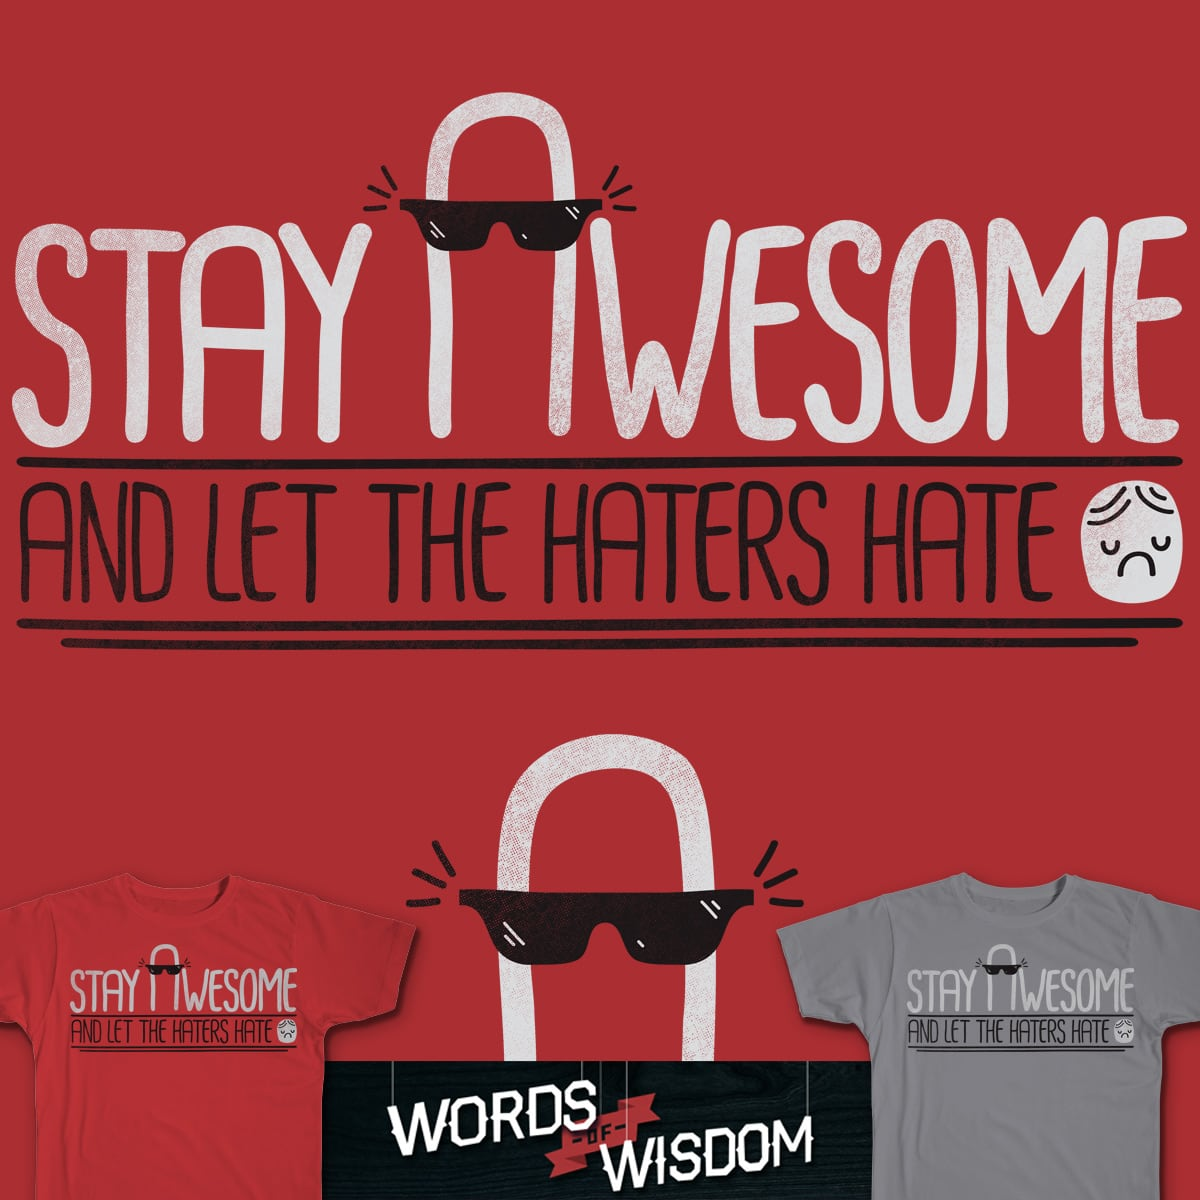 STAY AWESOME by BeanePod and goliath72 on Threadless